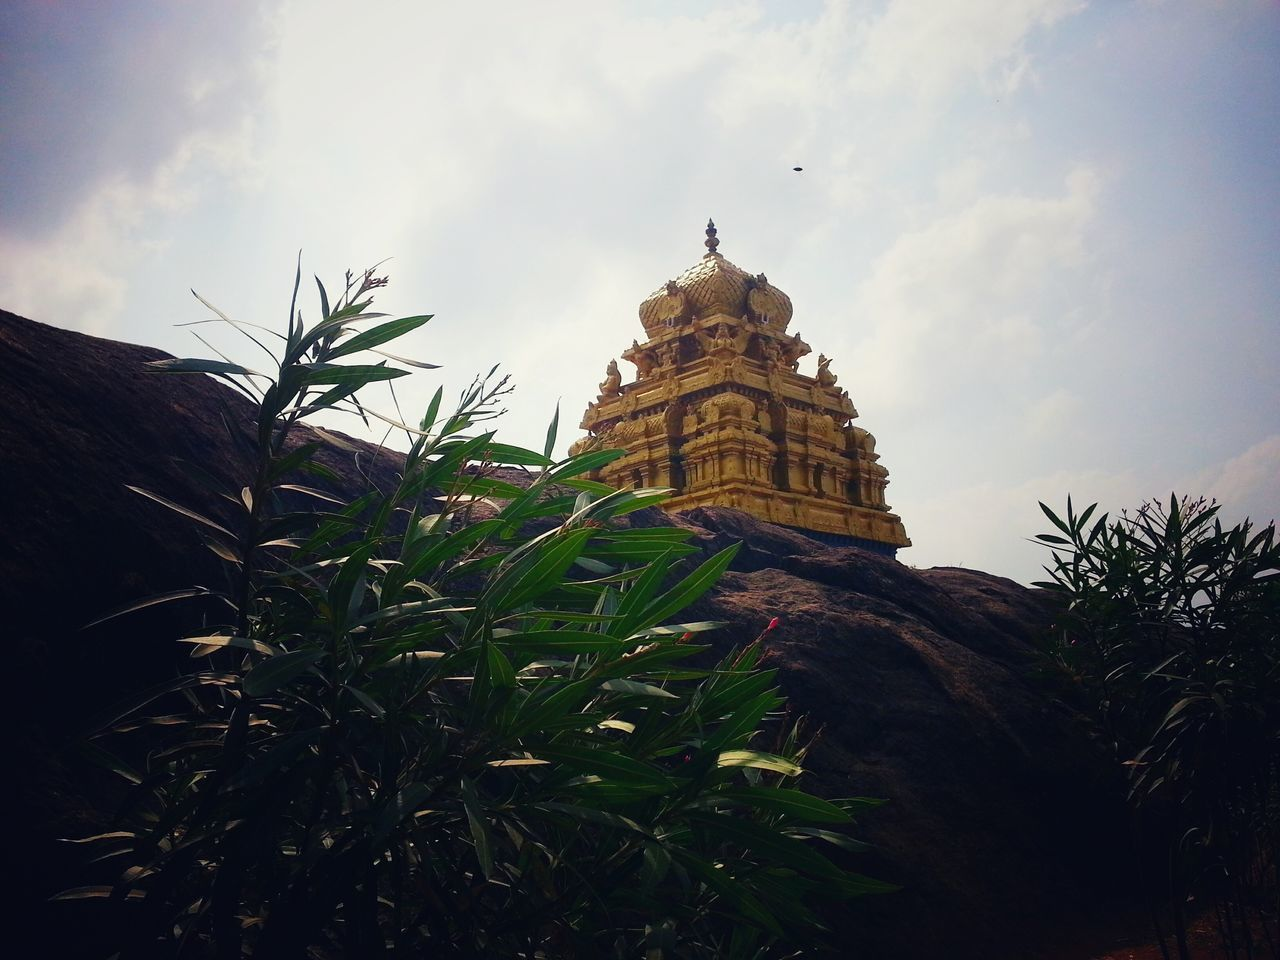 Religion No People Tree Outdoors Day Temple - Building Temple Tower EyeEm Best Shots Sunlight Golden Temple Sky_collection Rocks